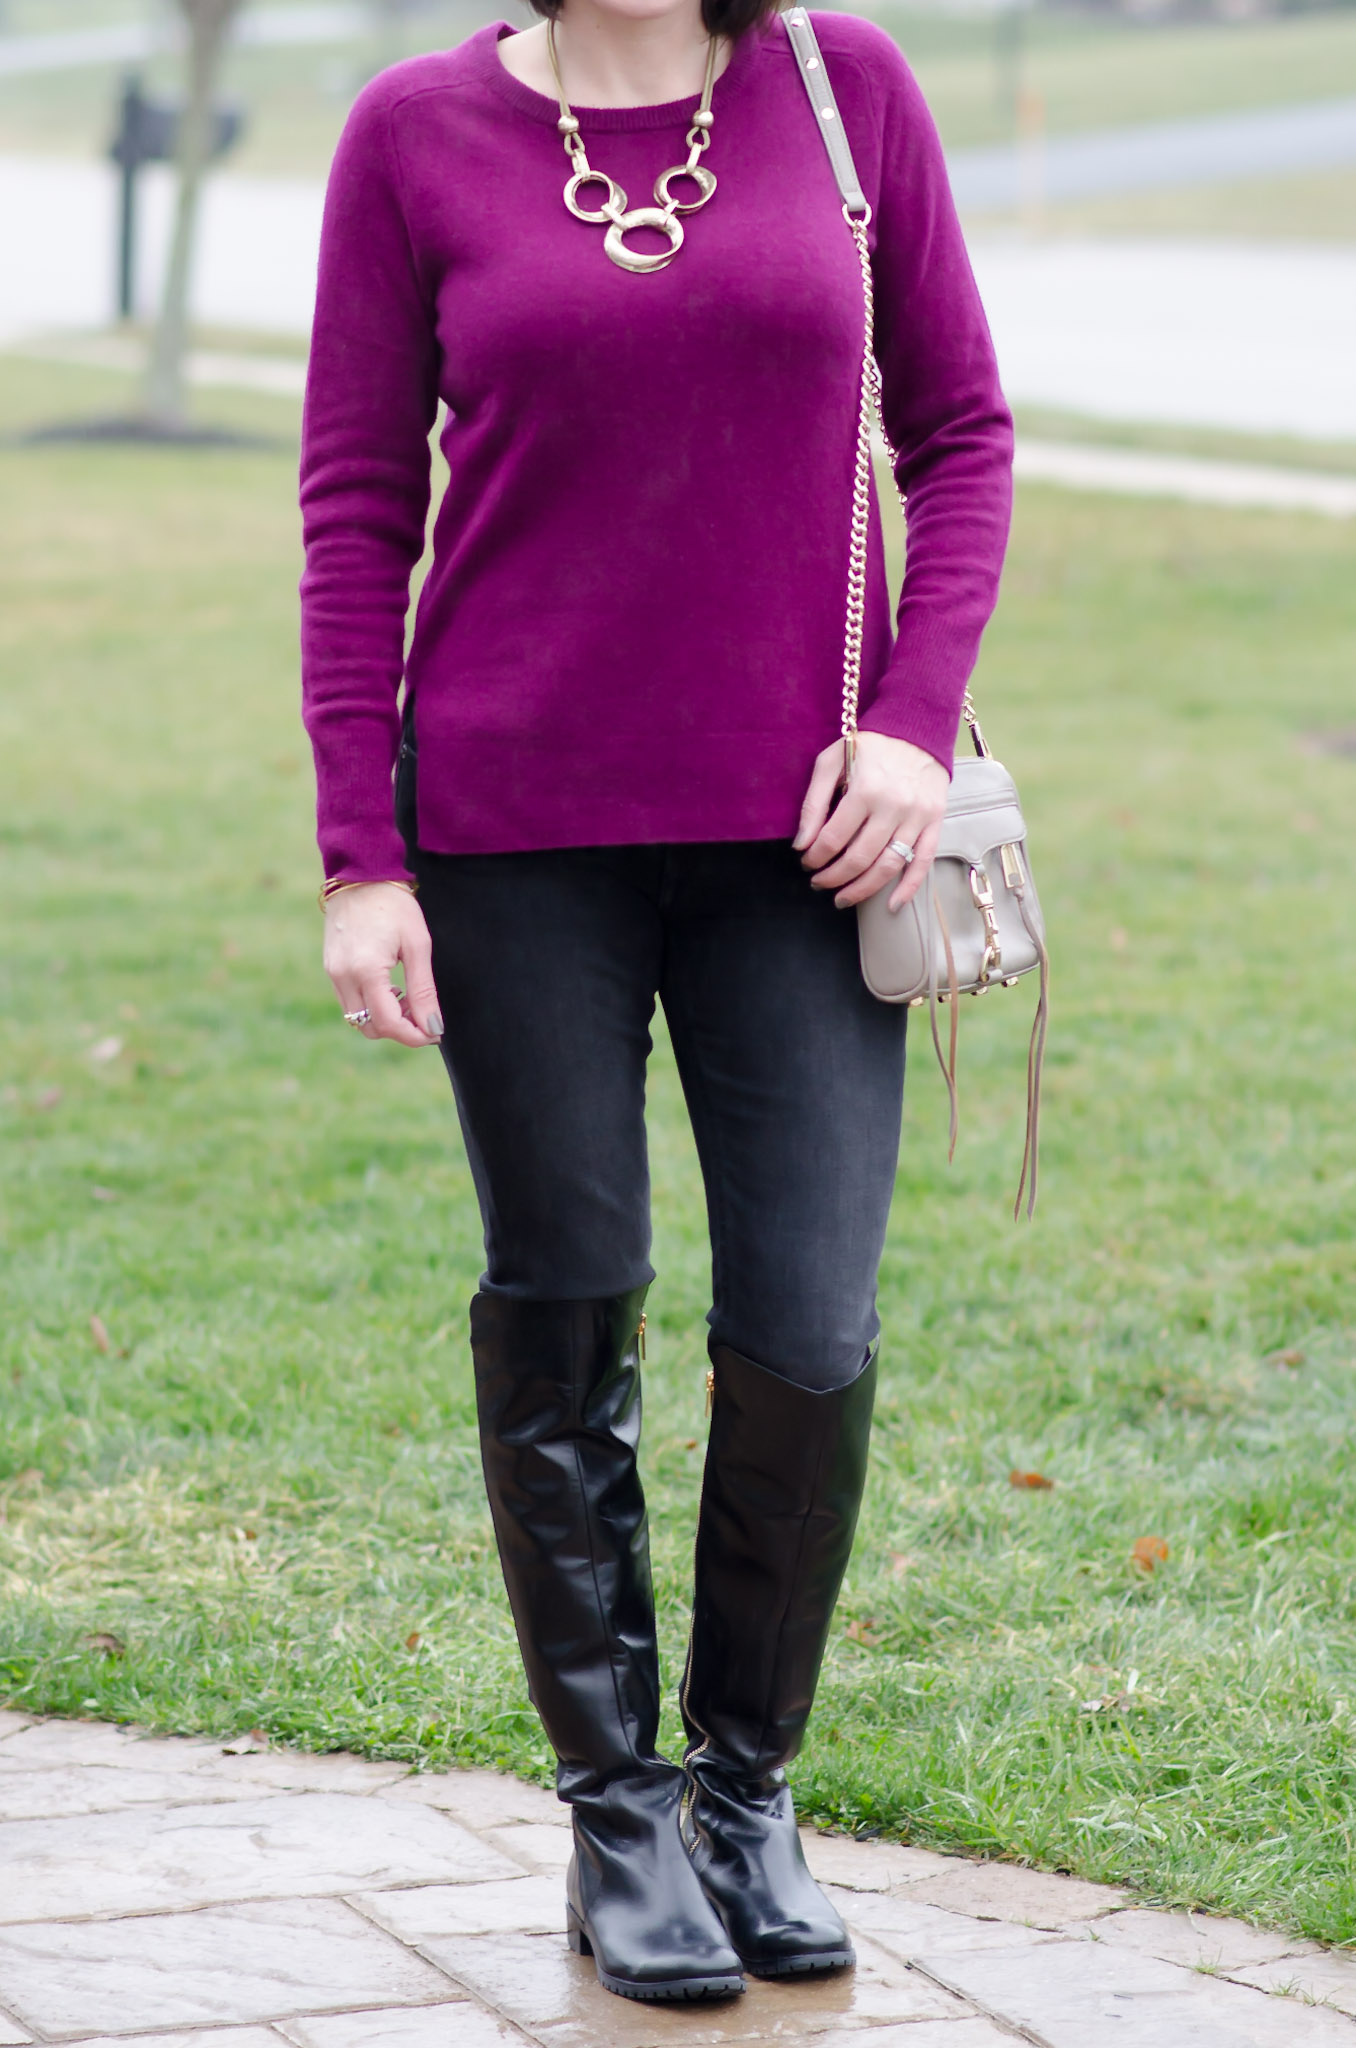 Fashion for Real Women: Cashmere Sweater, Black Jeans, Black OTK Boots